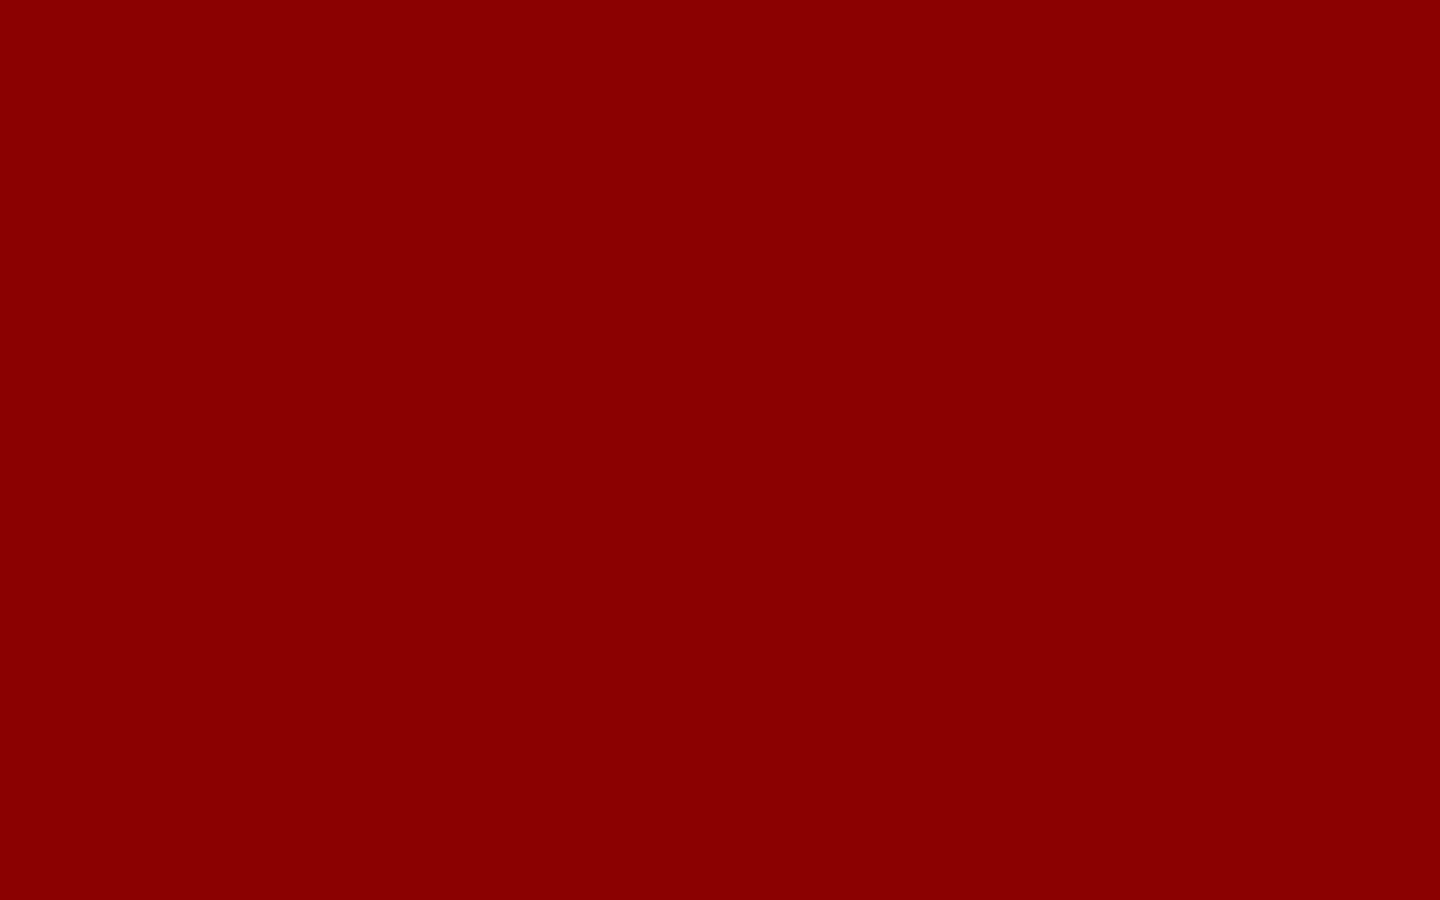 Deep Red Backgrounds 1440x900